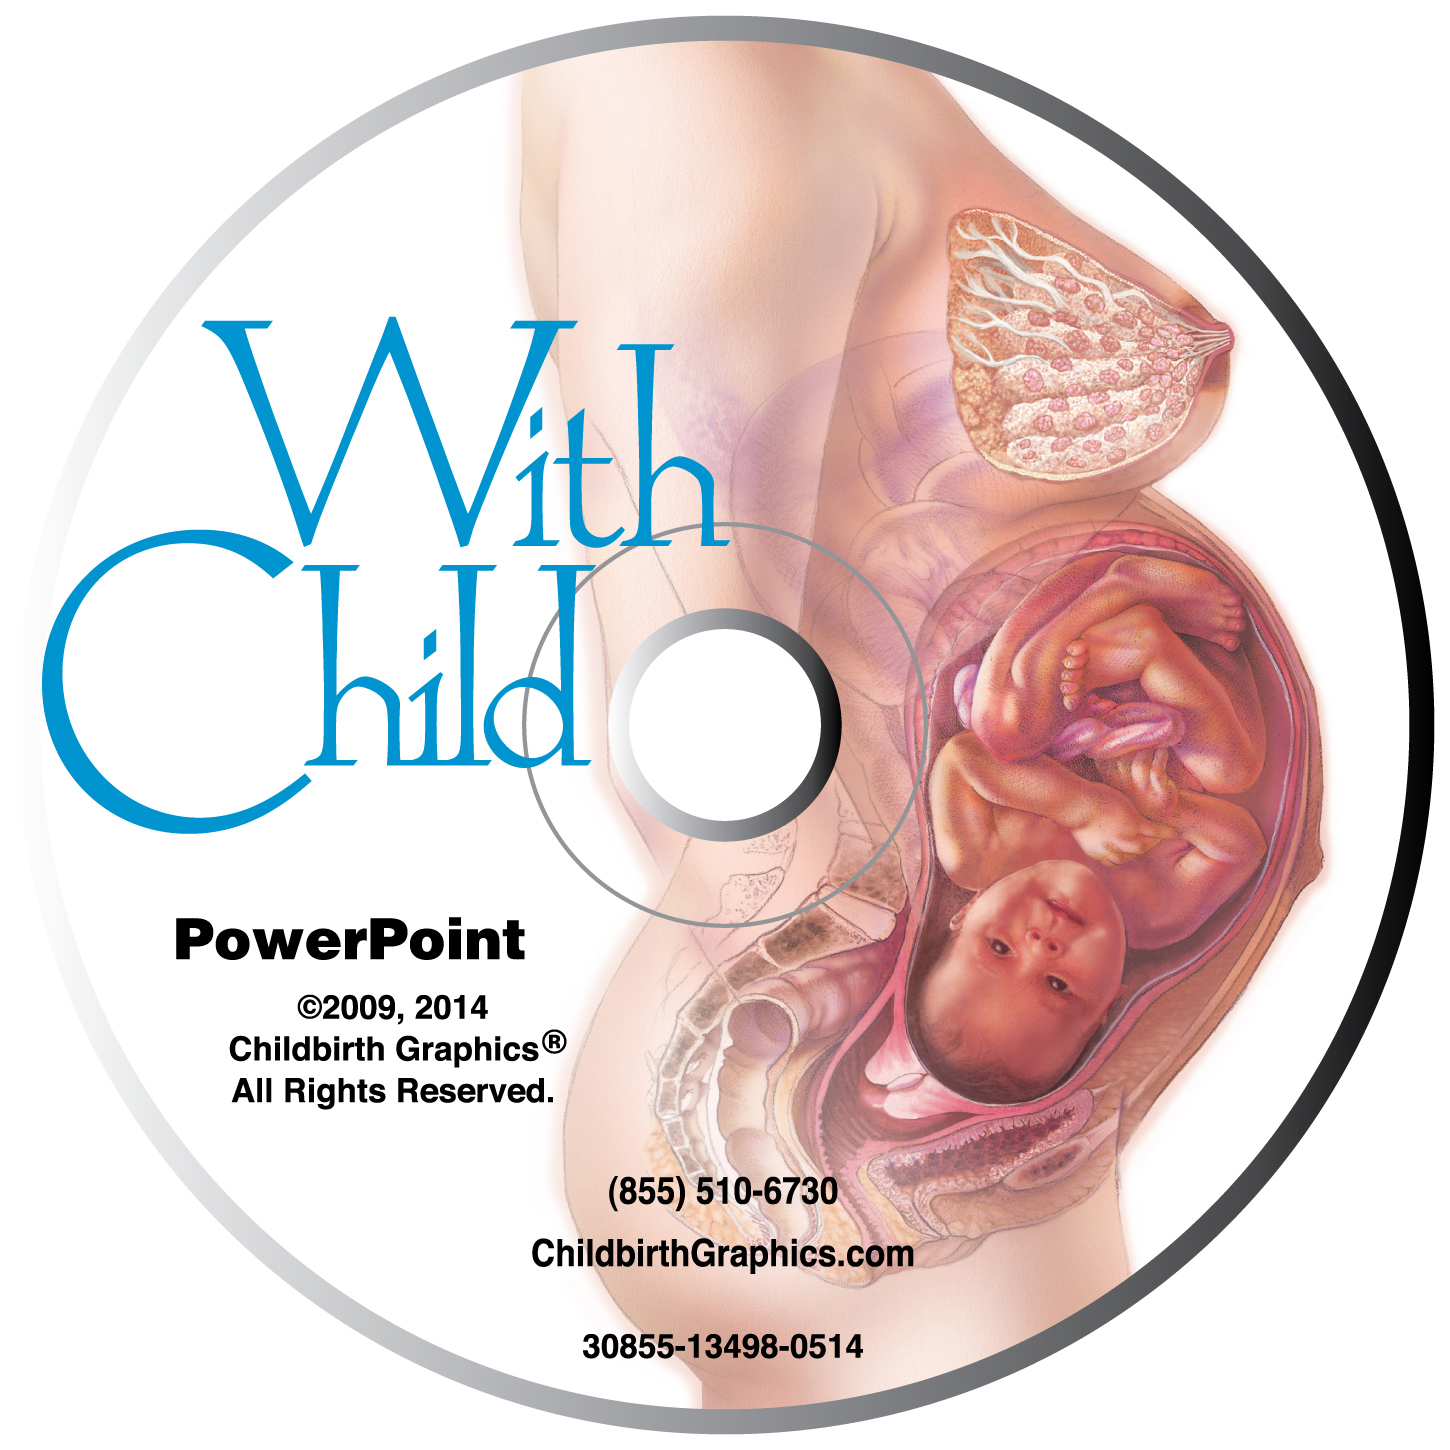 With Child PowerPoint, comprehensive 116 frame pre-pregnancy to 6 months postpartum presentation on disk with 46 page resource guide, With Child disk image, Childbirth Graphics, 30855